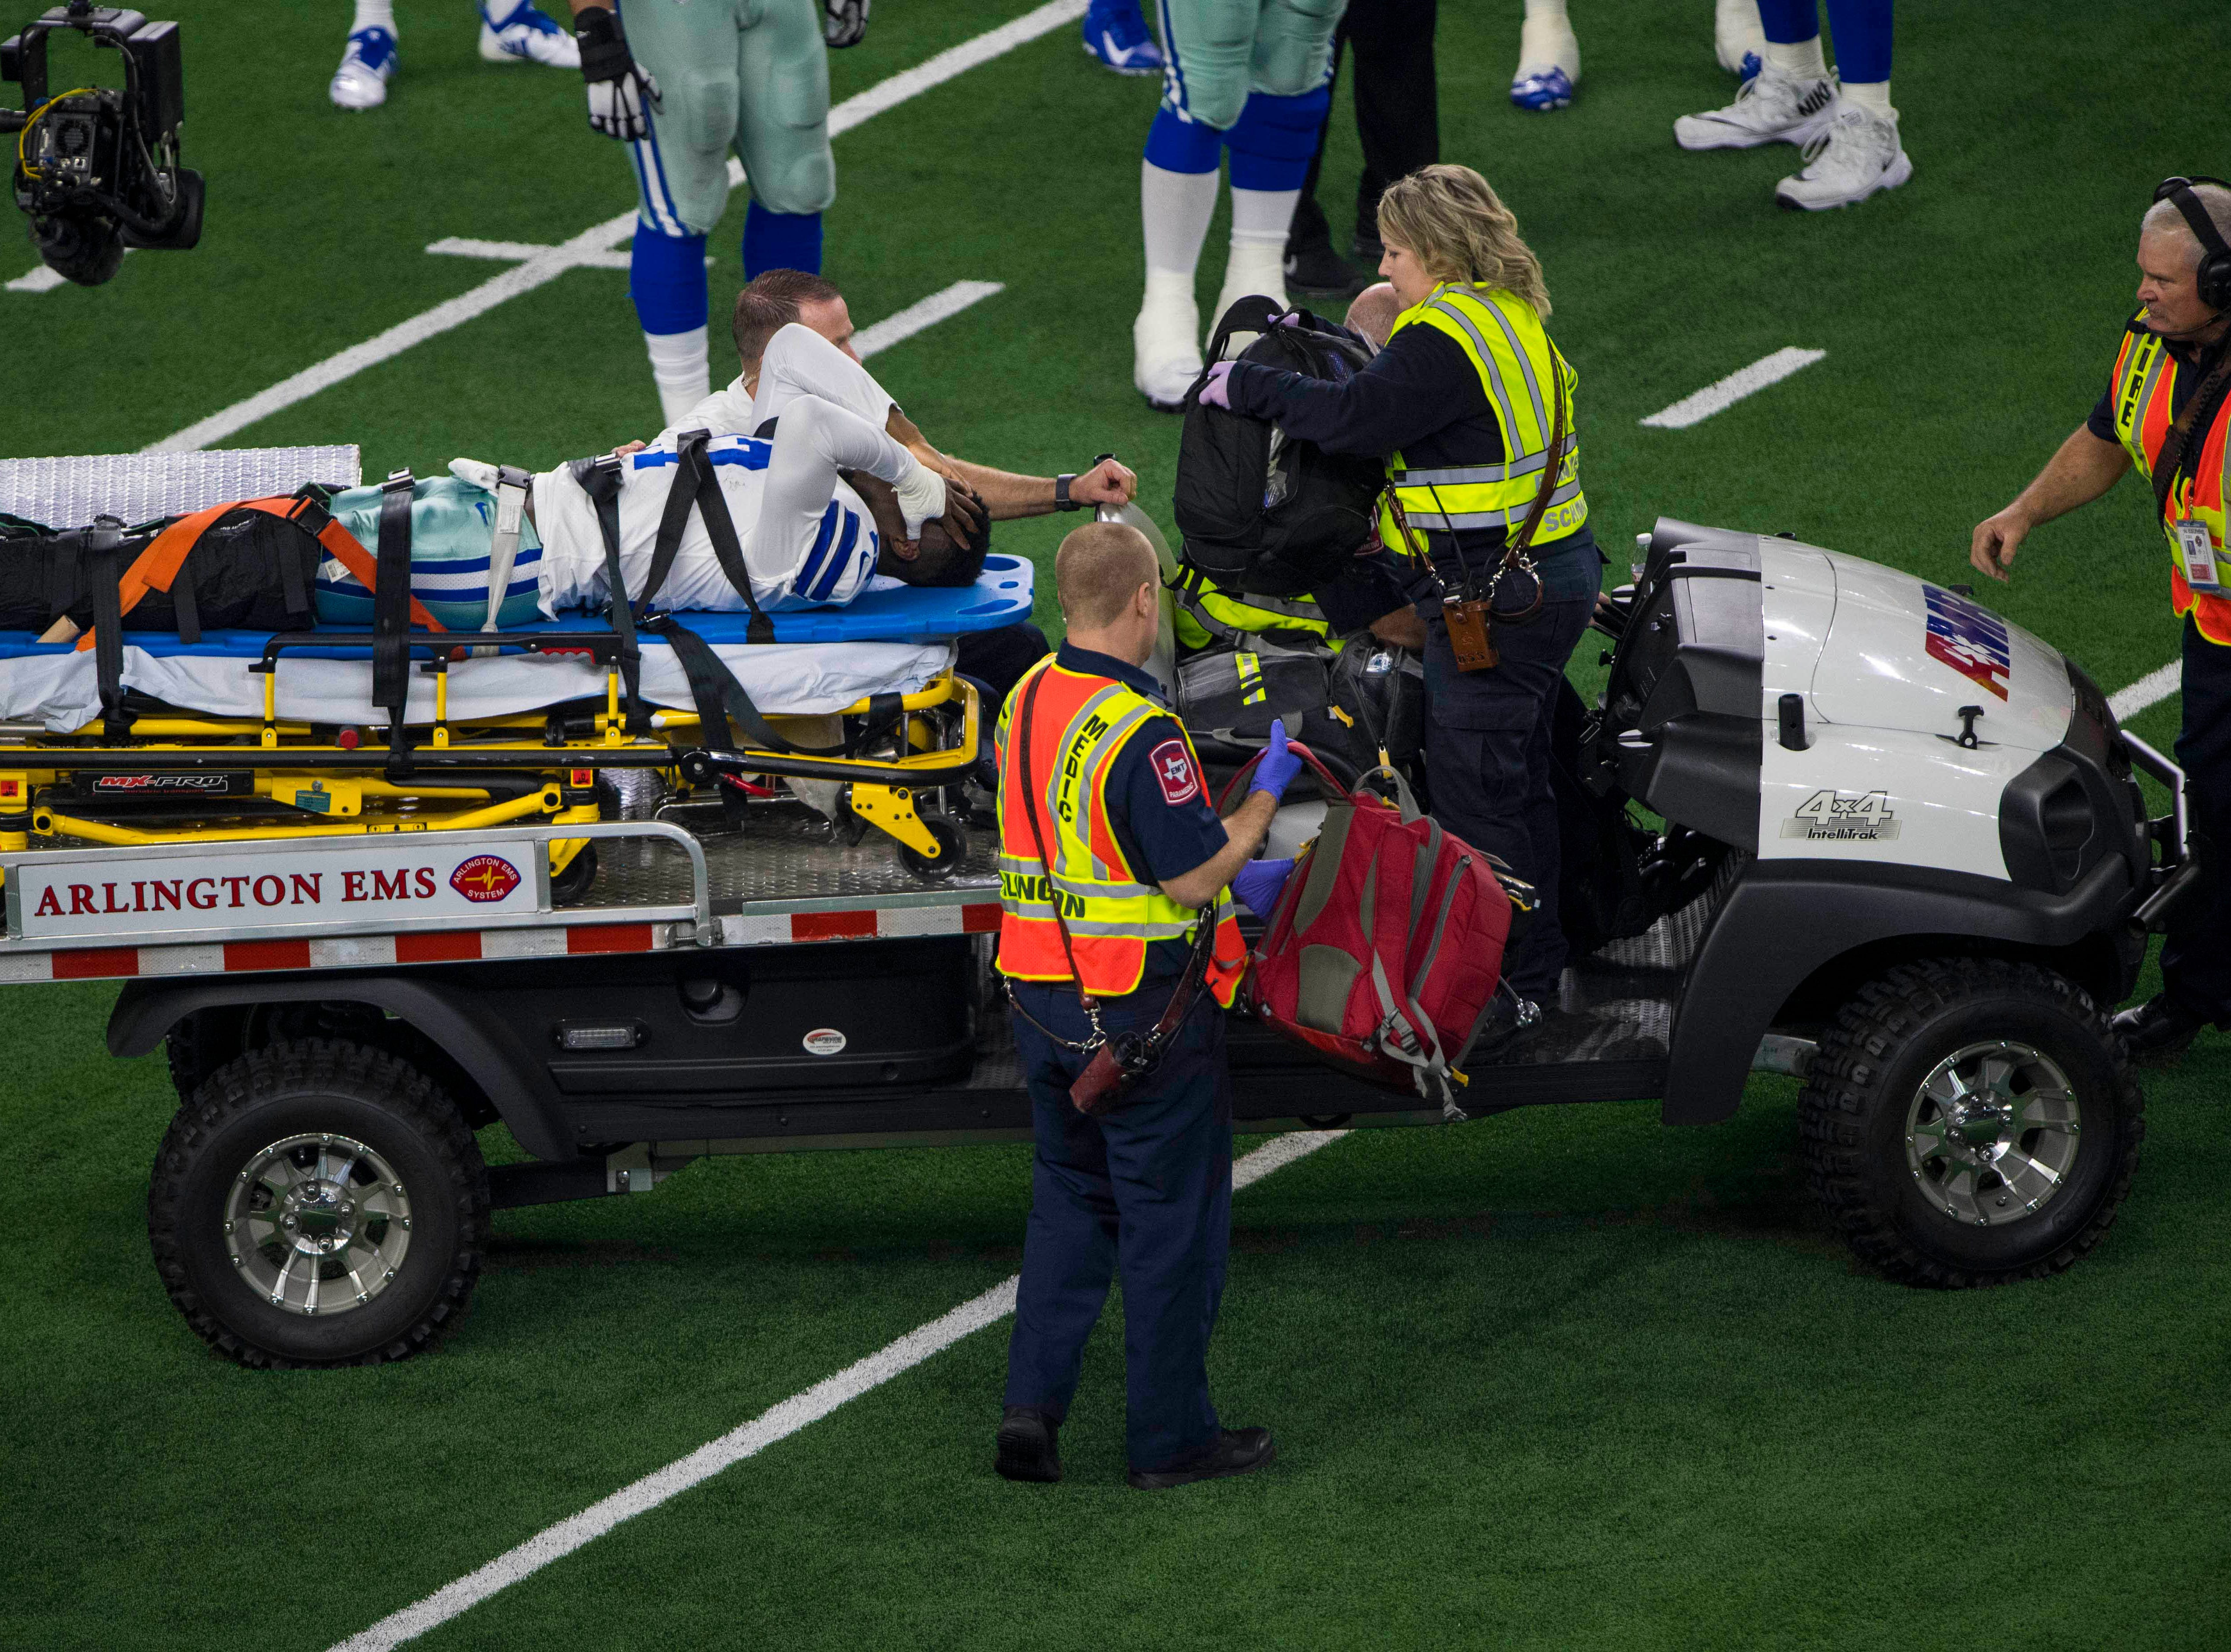 Dallas Cowboys wide receiver Allen Hurns is carted off the field during the first quarter against the Seattle Seahawks at AT&T Stadium.